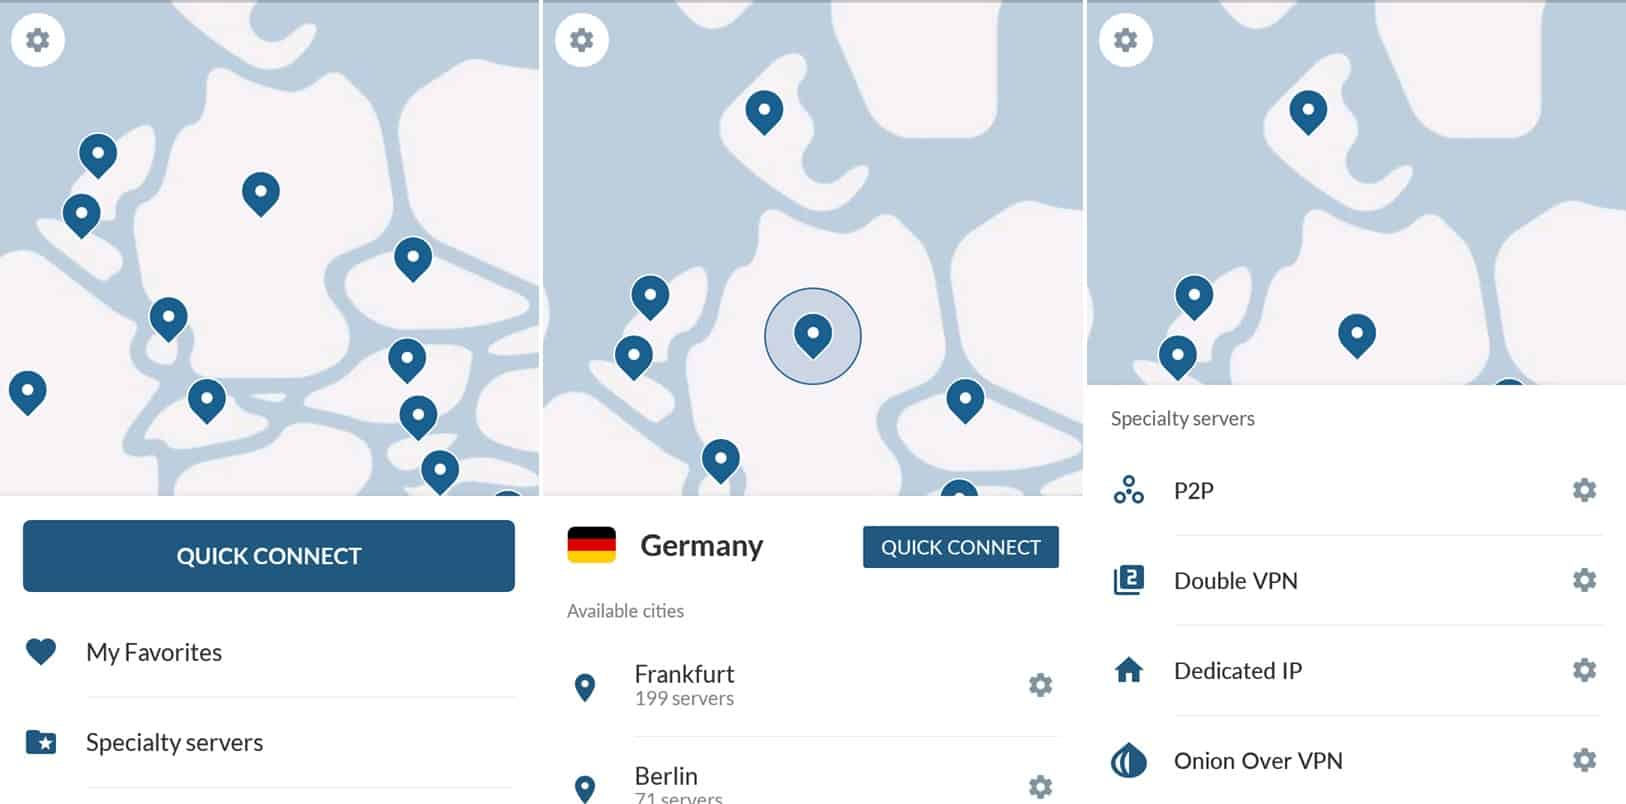 NordVPN mobile app screens